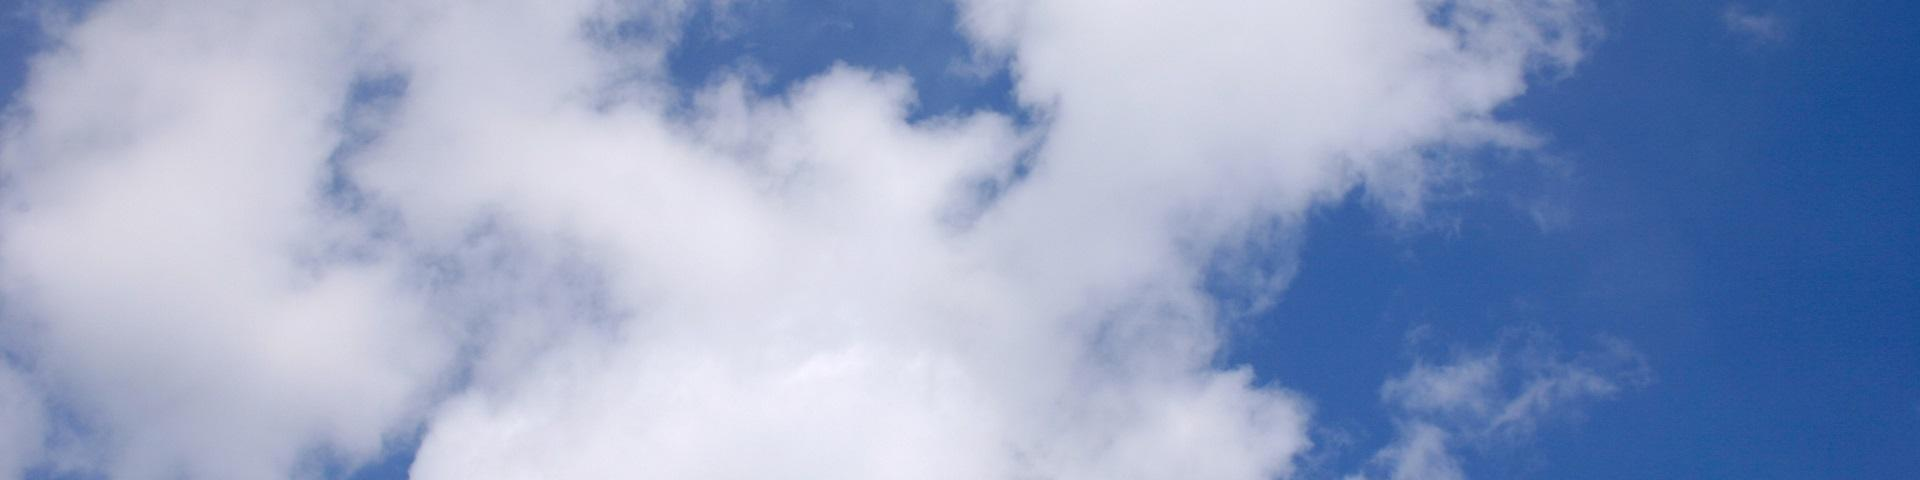 Image of clouds in the air